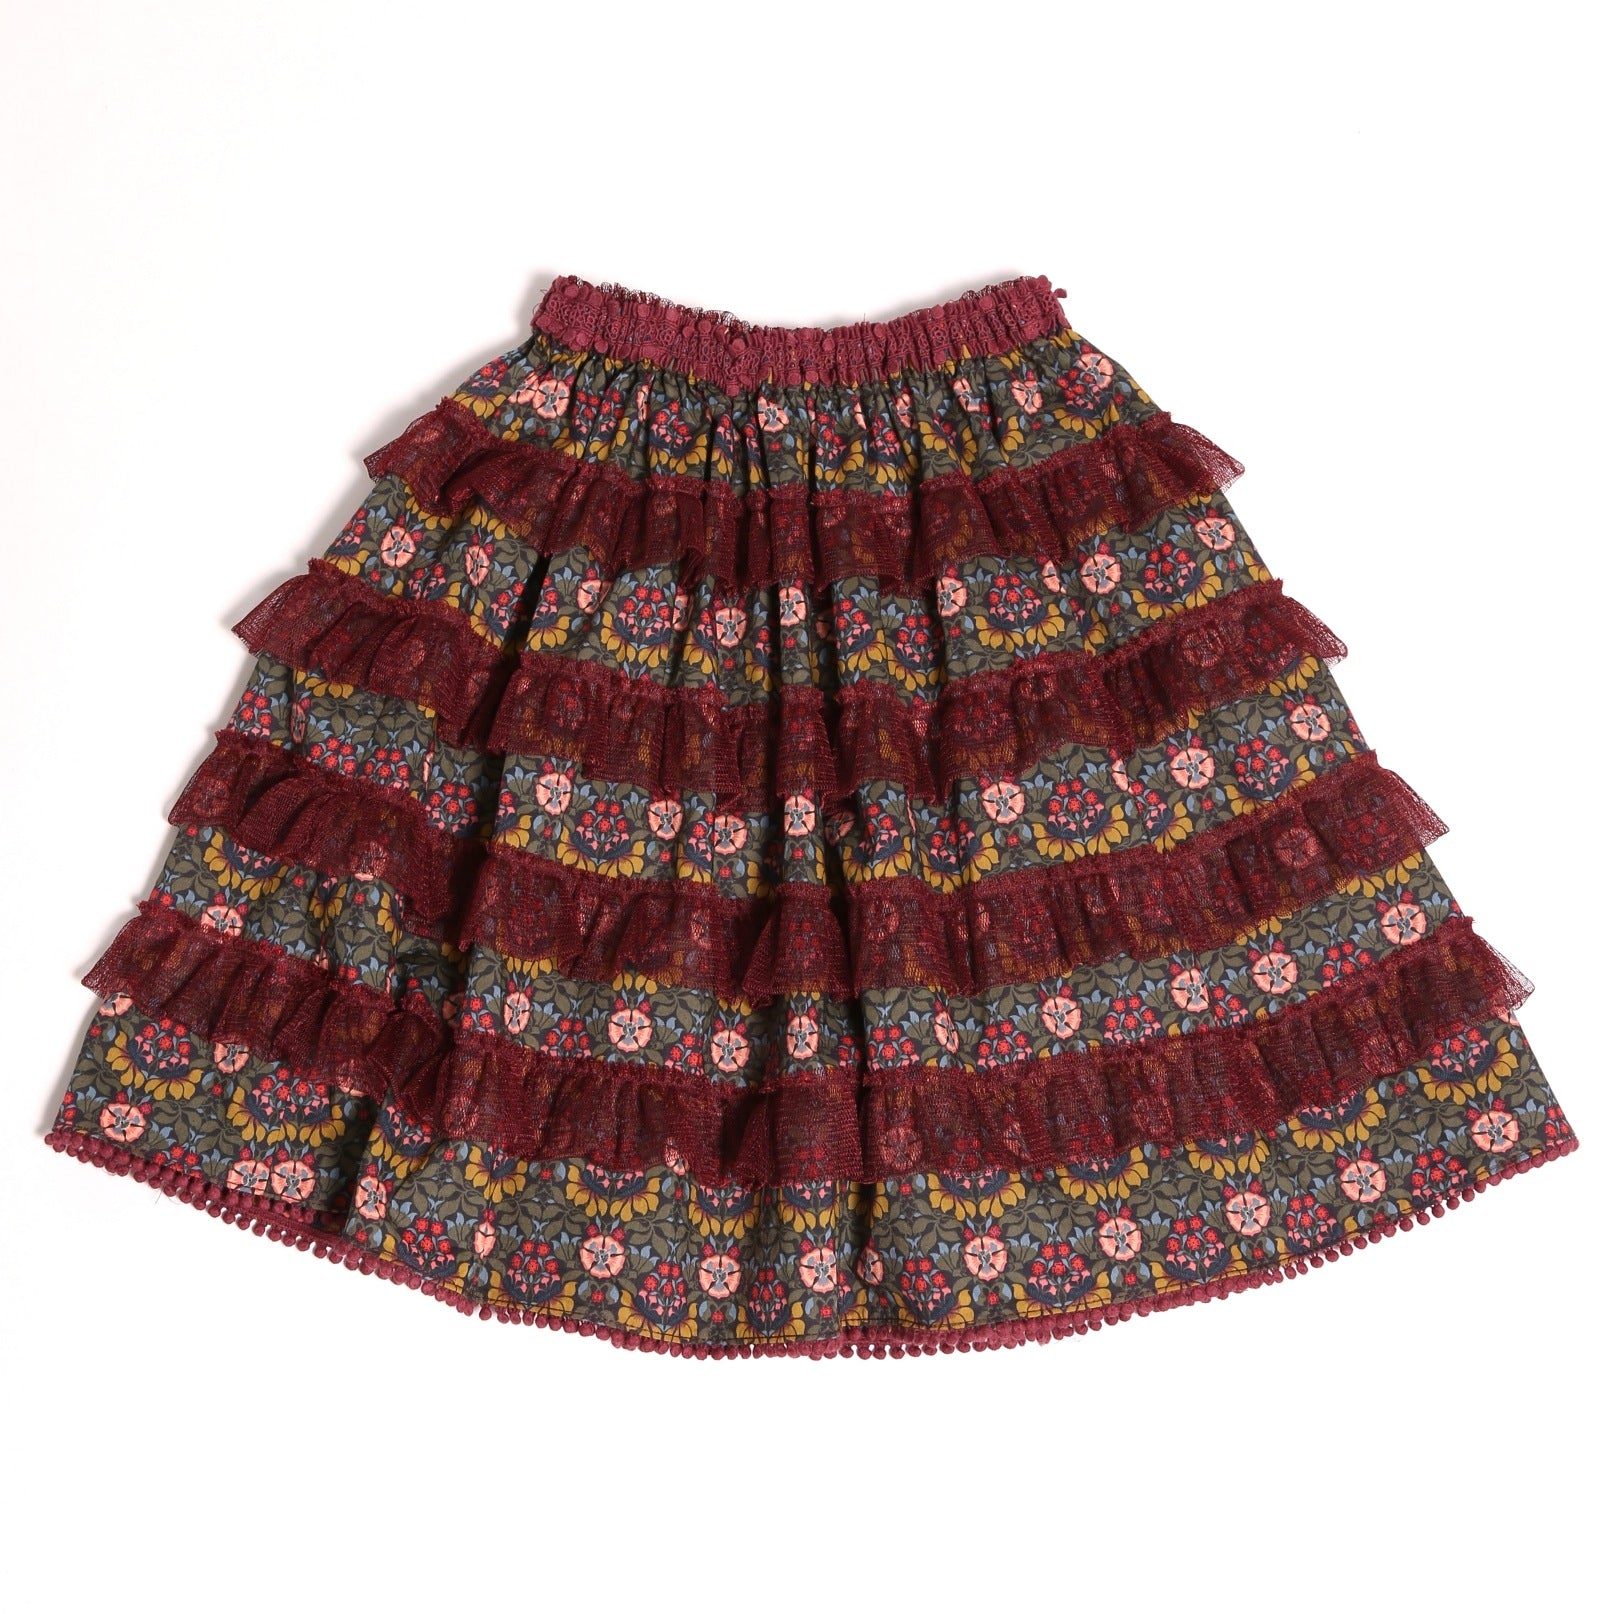 Nightingale Petticoat